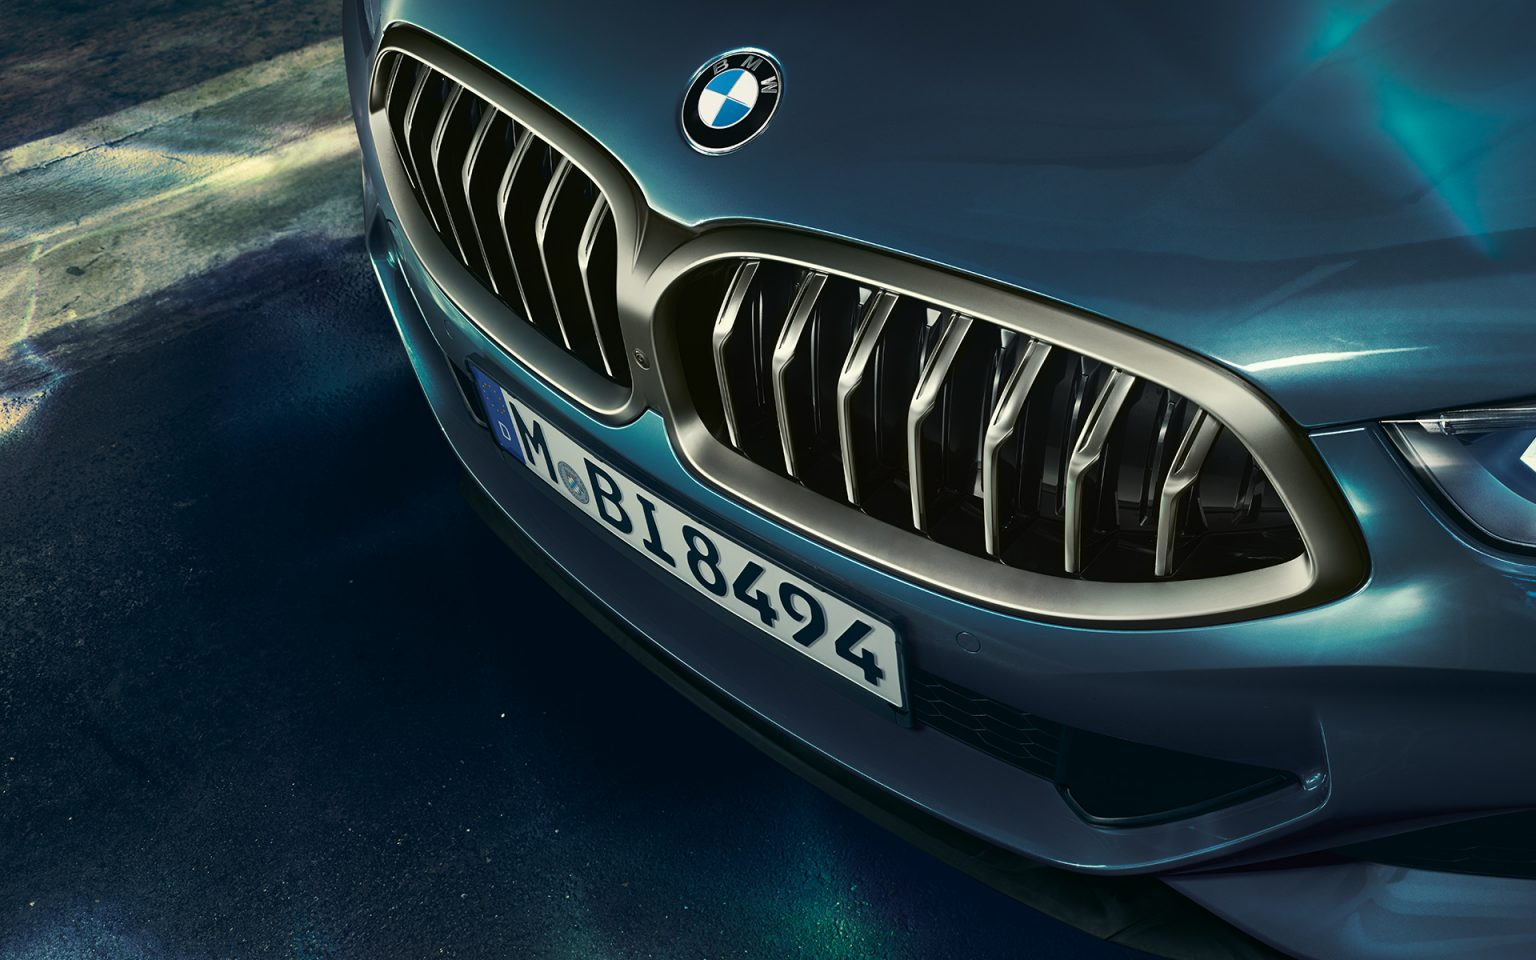 bmw-8series-coupe-gallery-wallpaper-07.jpg.asset.1527577209589